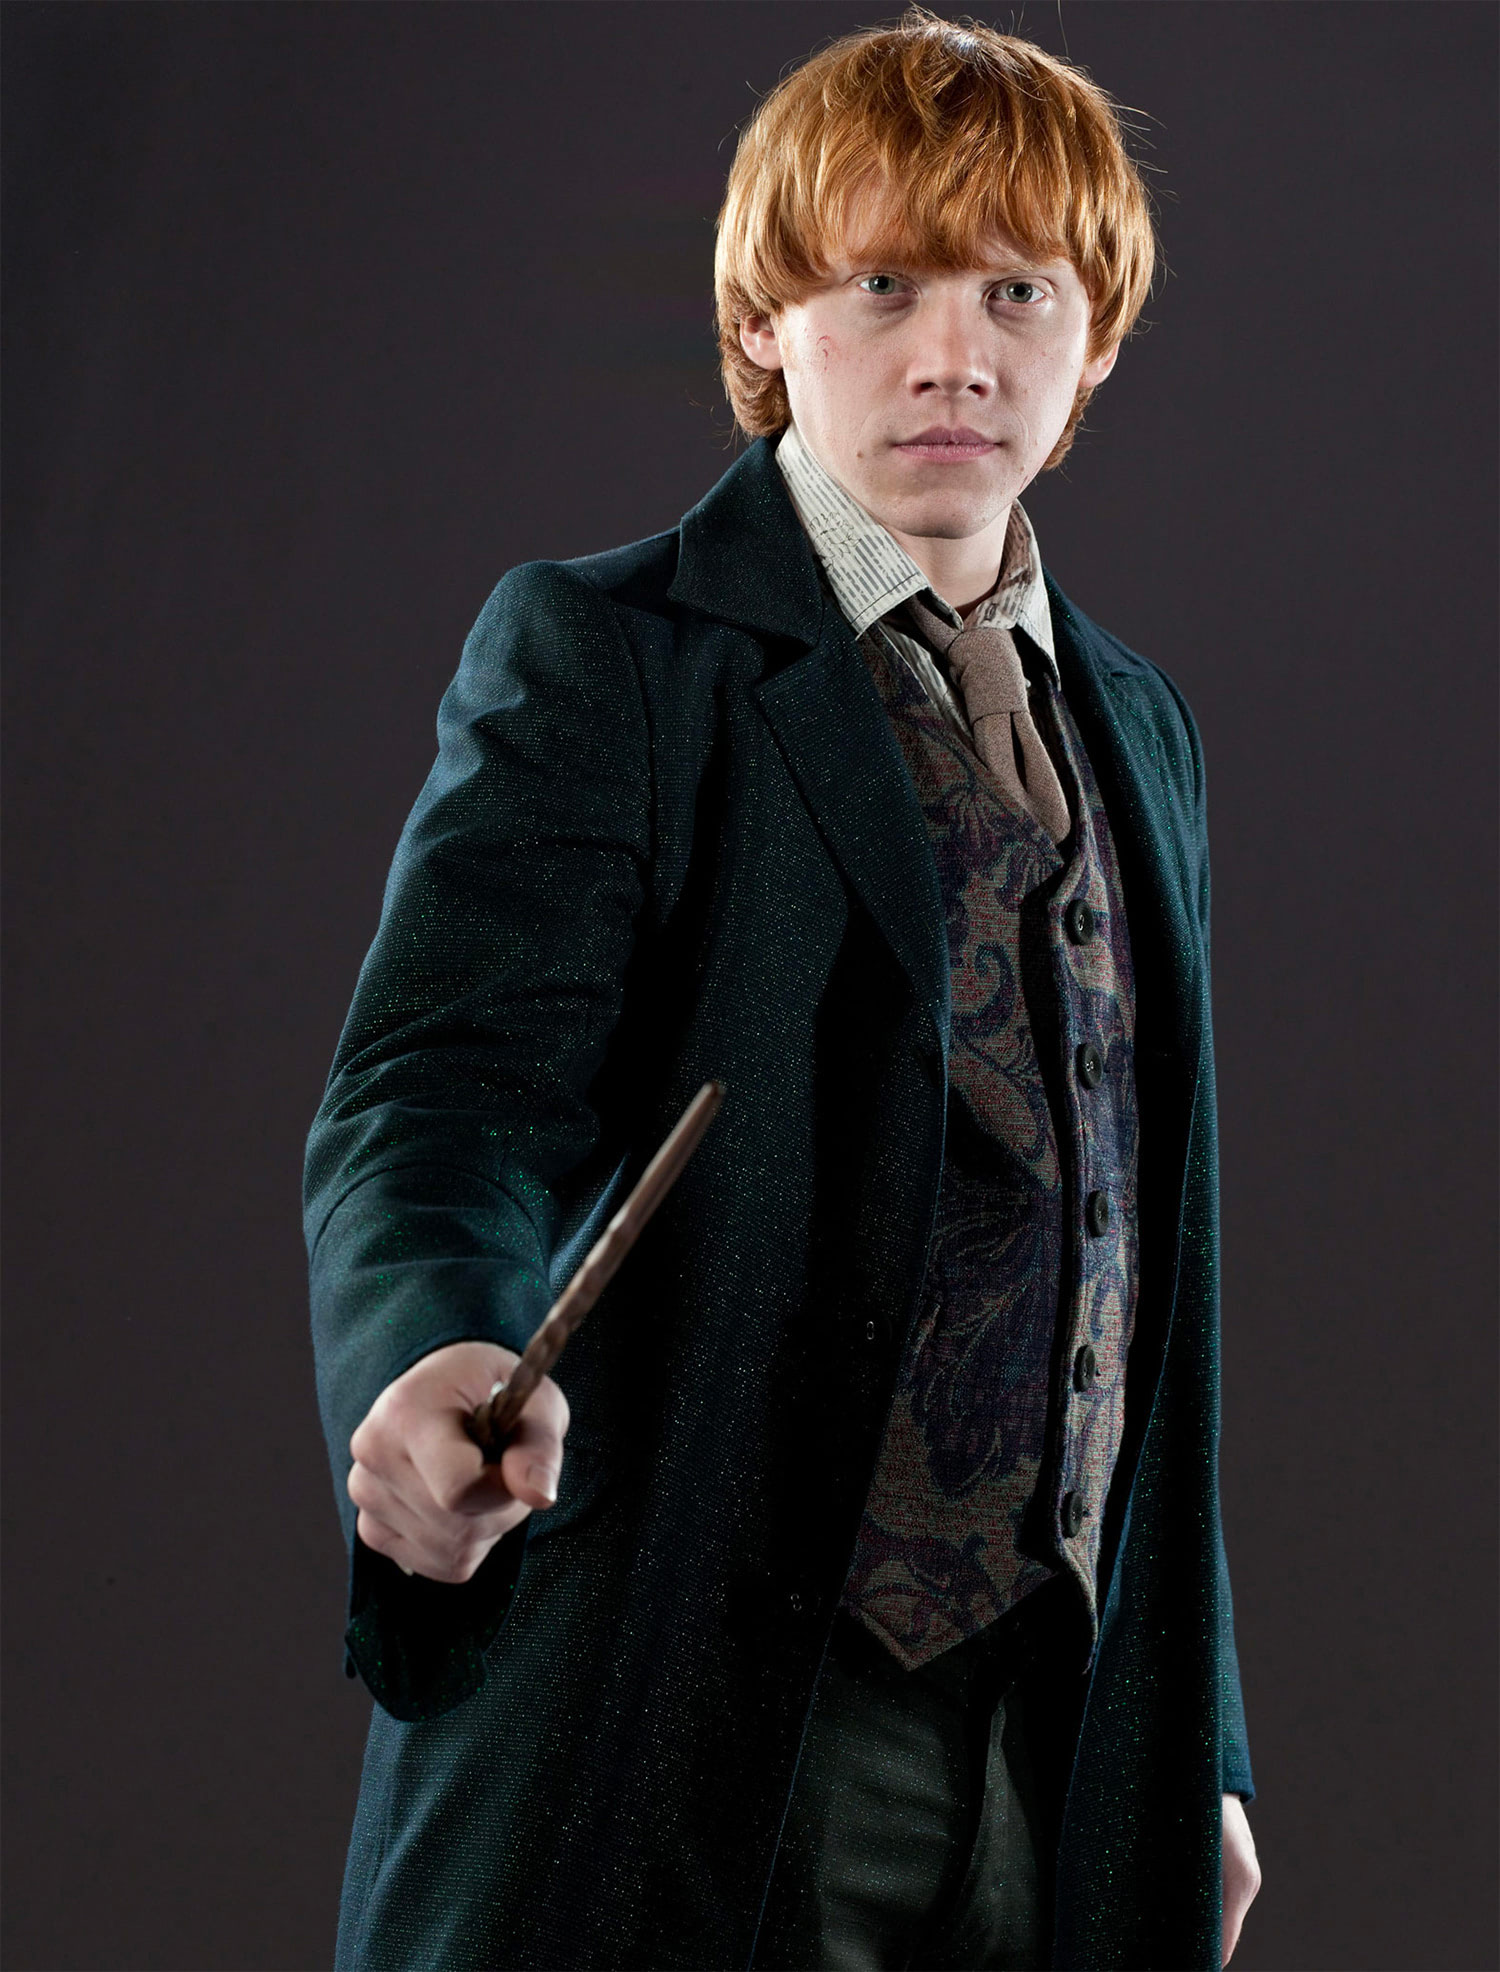 Ron Weasley wedding portrait